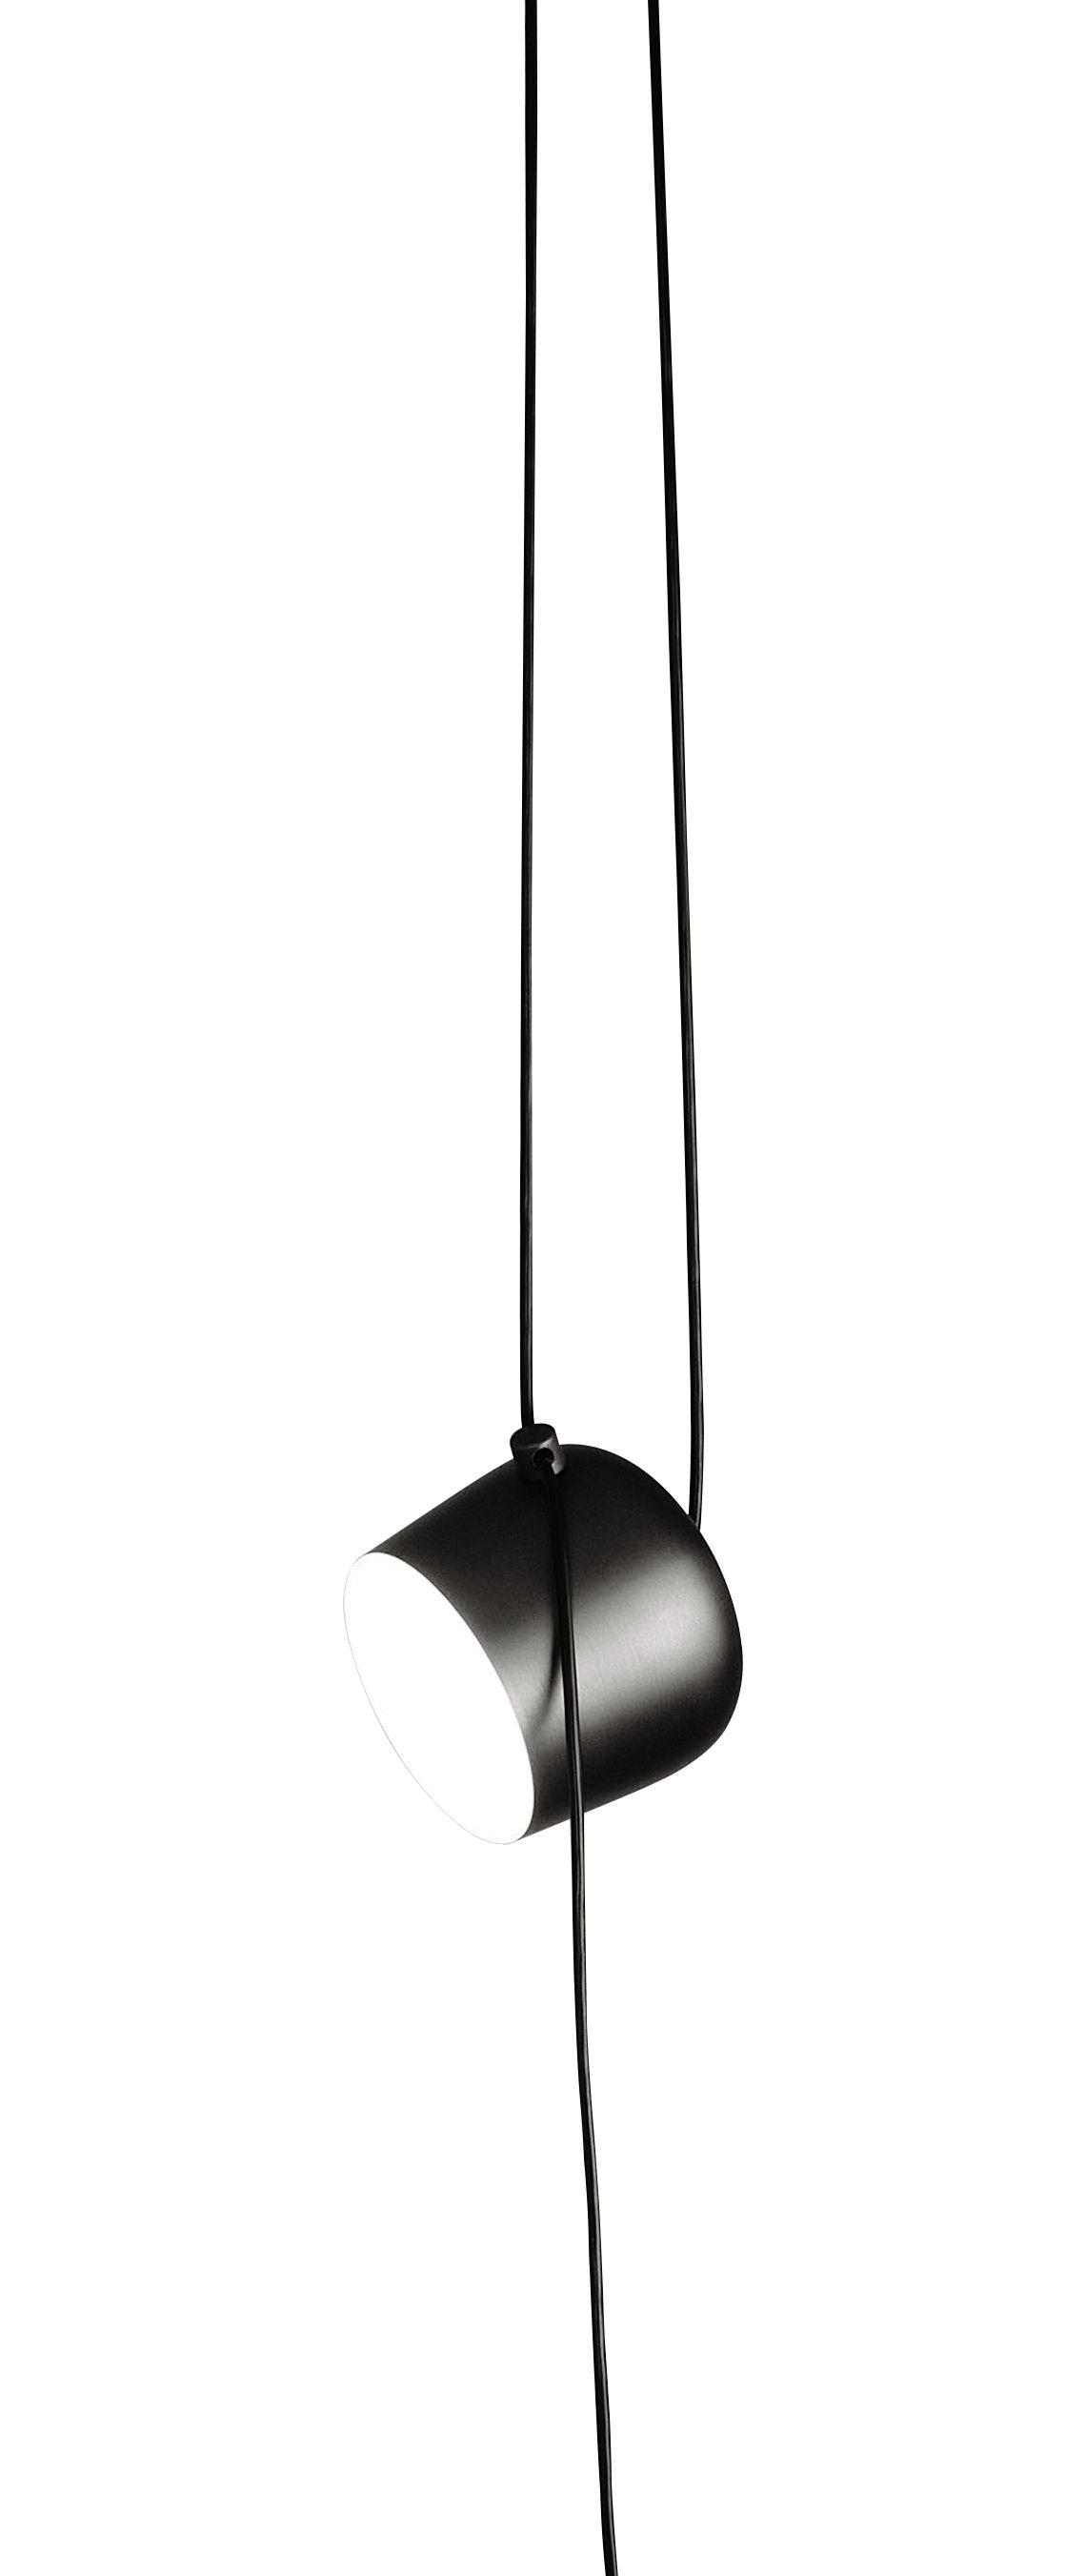 lampe aim small led flos - noir - l 9 x h 15 x Ø 17 | made in design